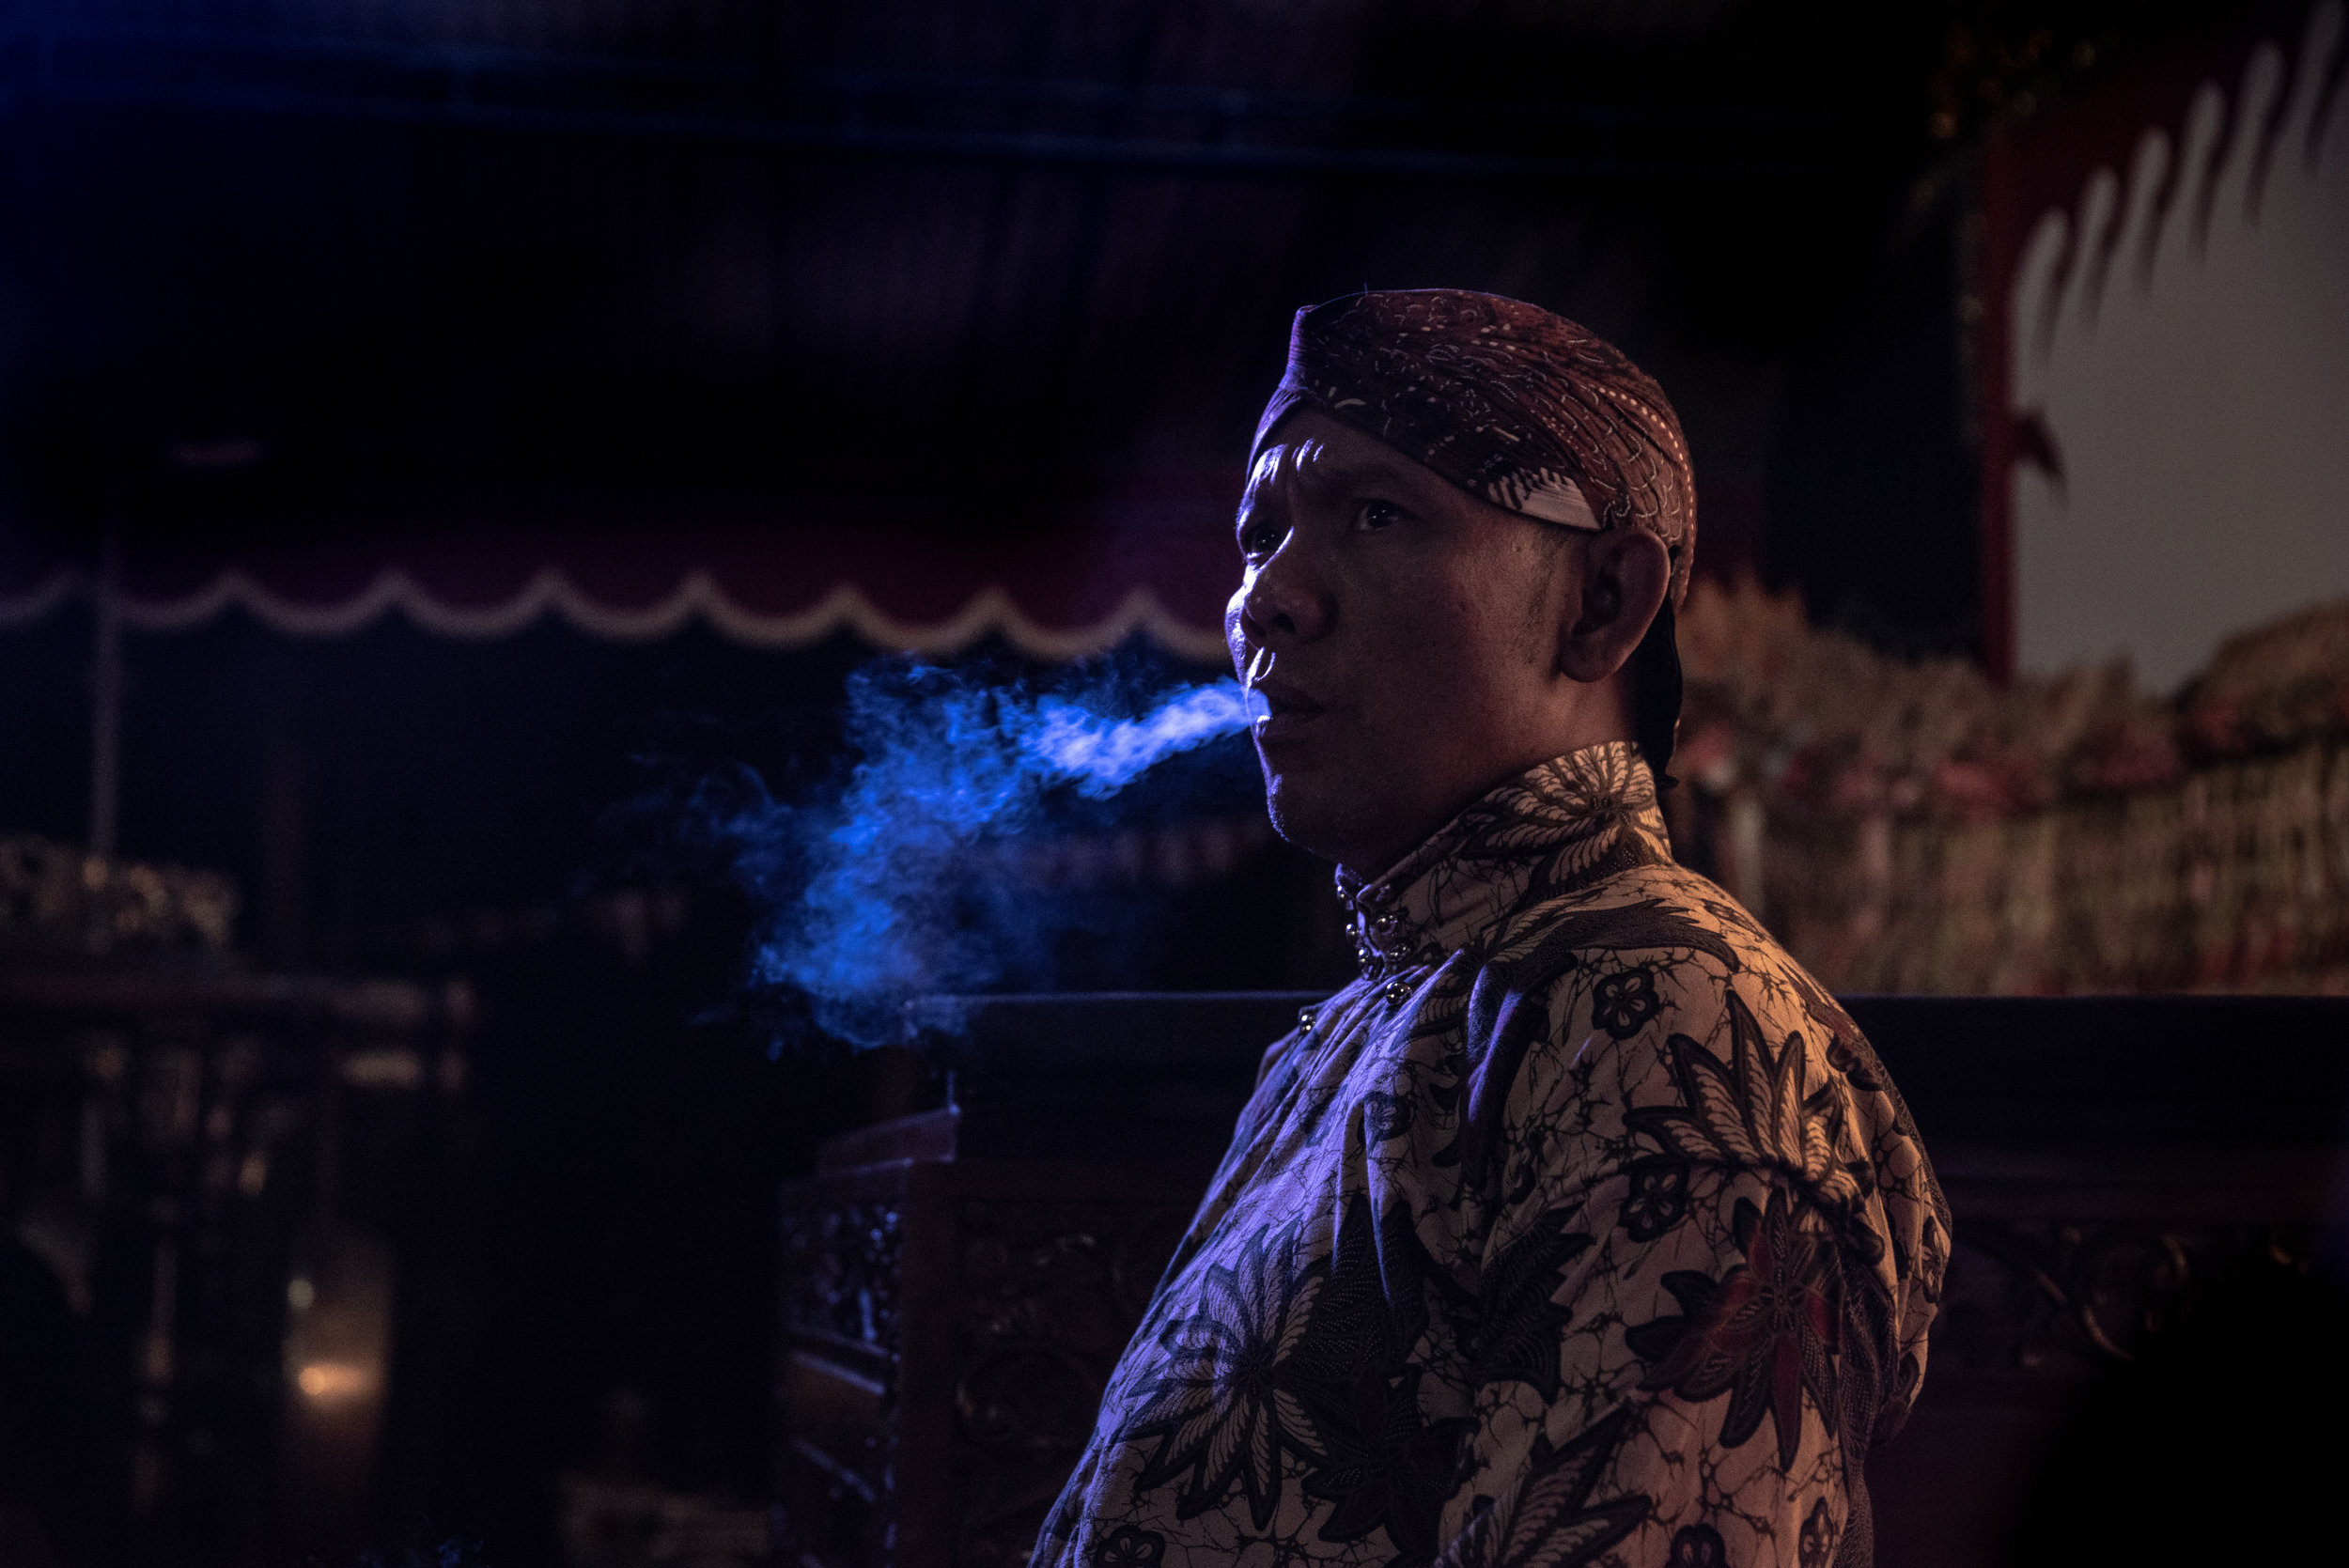 Ki Seno breathes smoke moments before he begins his performance